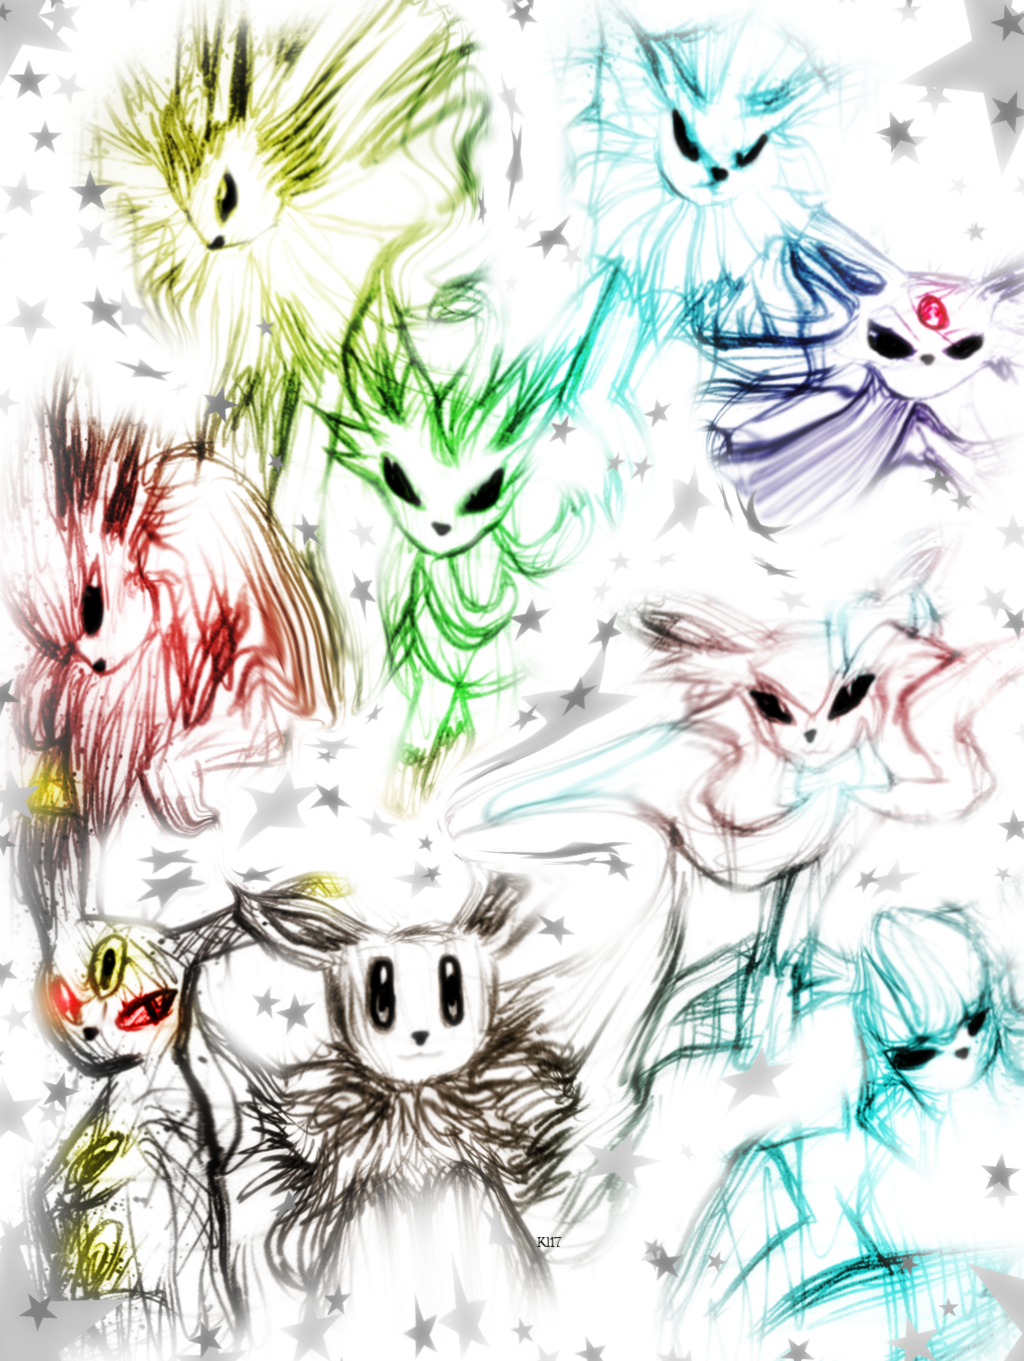 Most recent image: Pokemon-Eeveelutions Prism